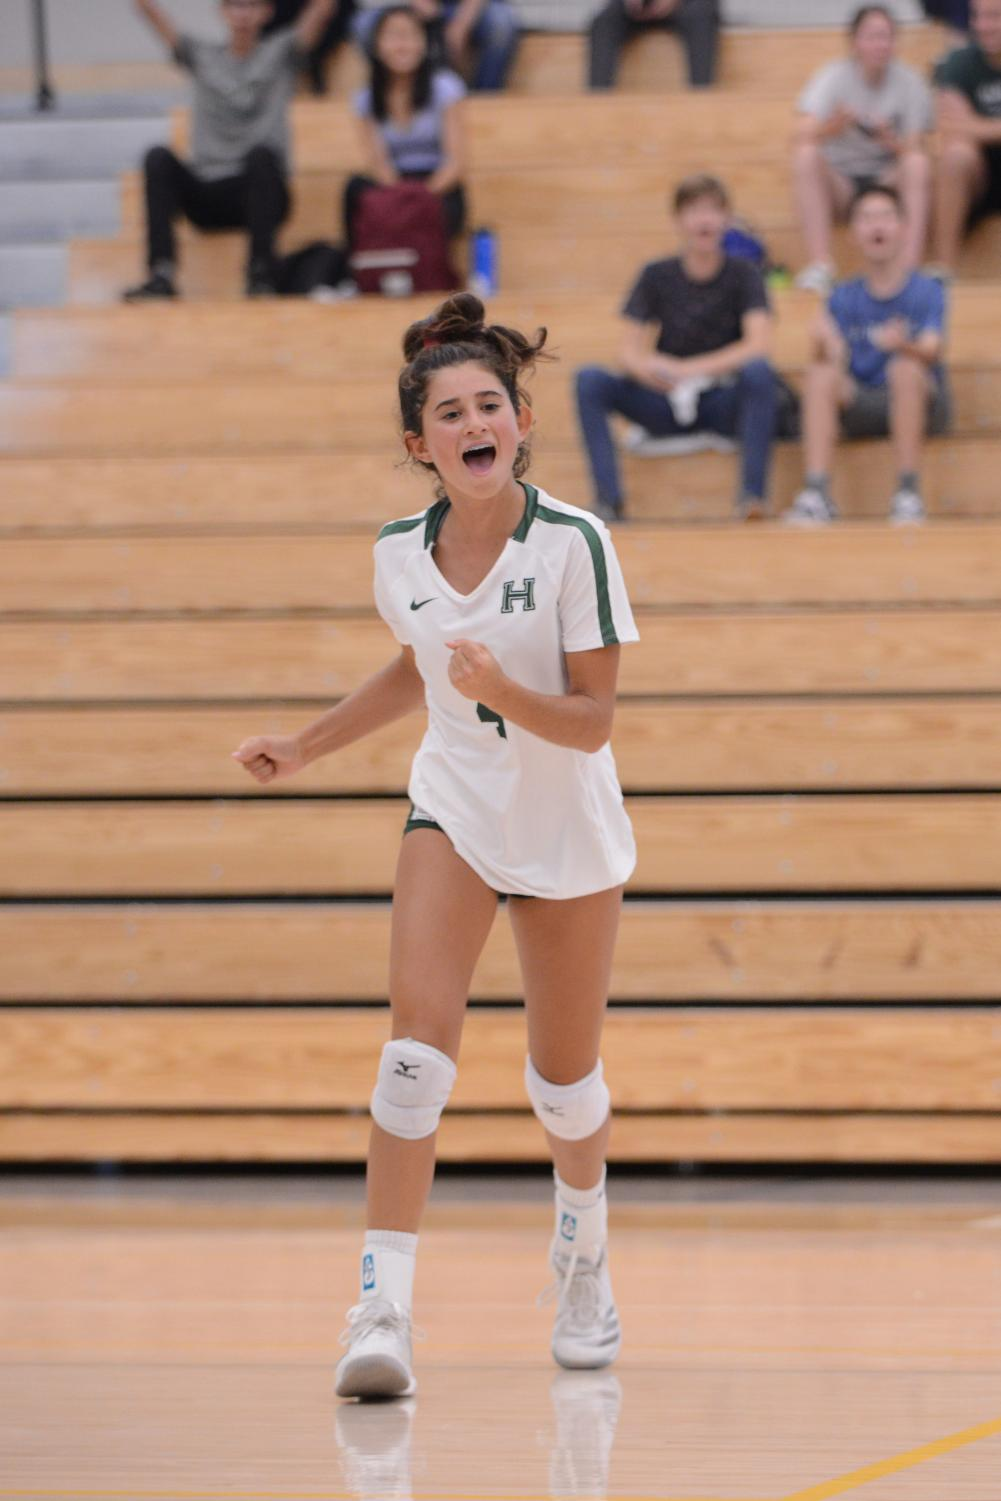 Tara+Ozdemir+%2810%29+celebrates+after+a+point+during+the+varsity+girls+volleyball+match+against+Branham.+The+Eagles+won++25-16%2C+25-18%2C+25-15.